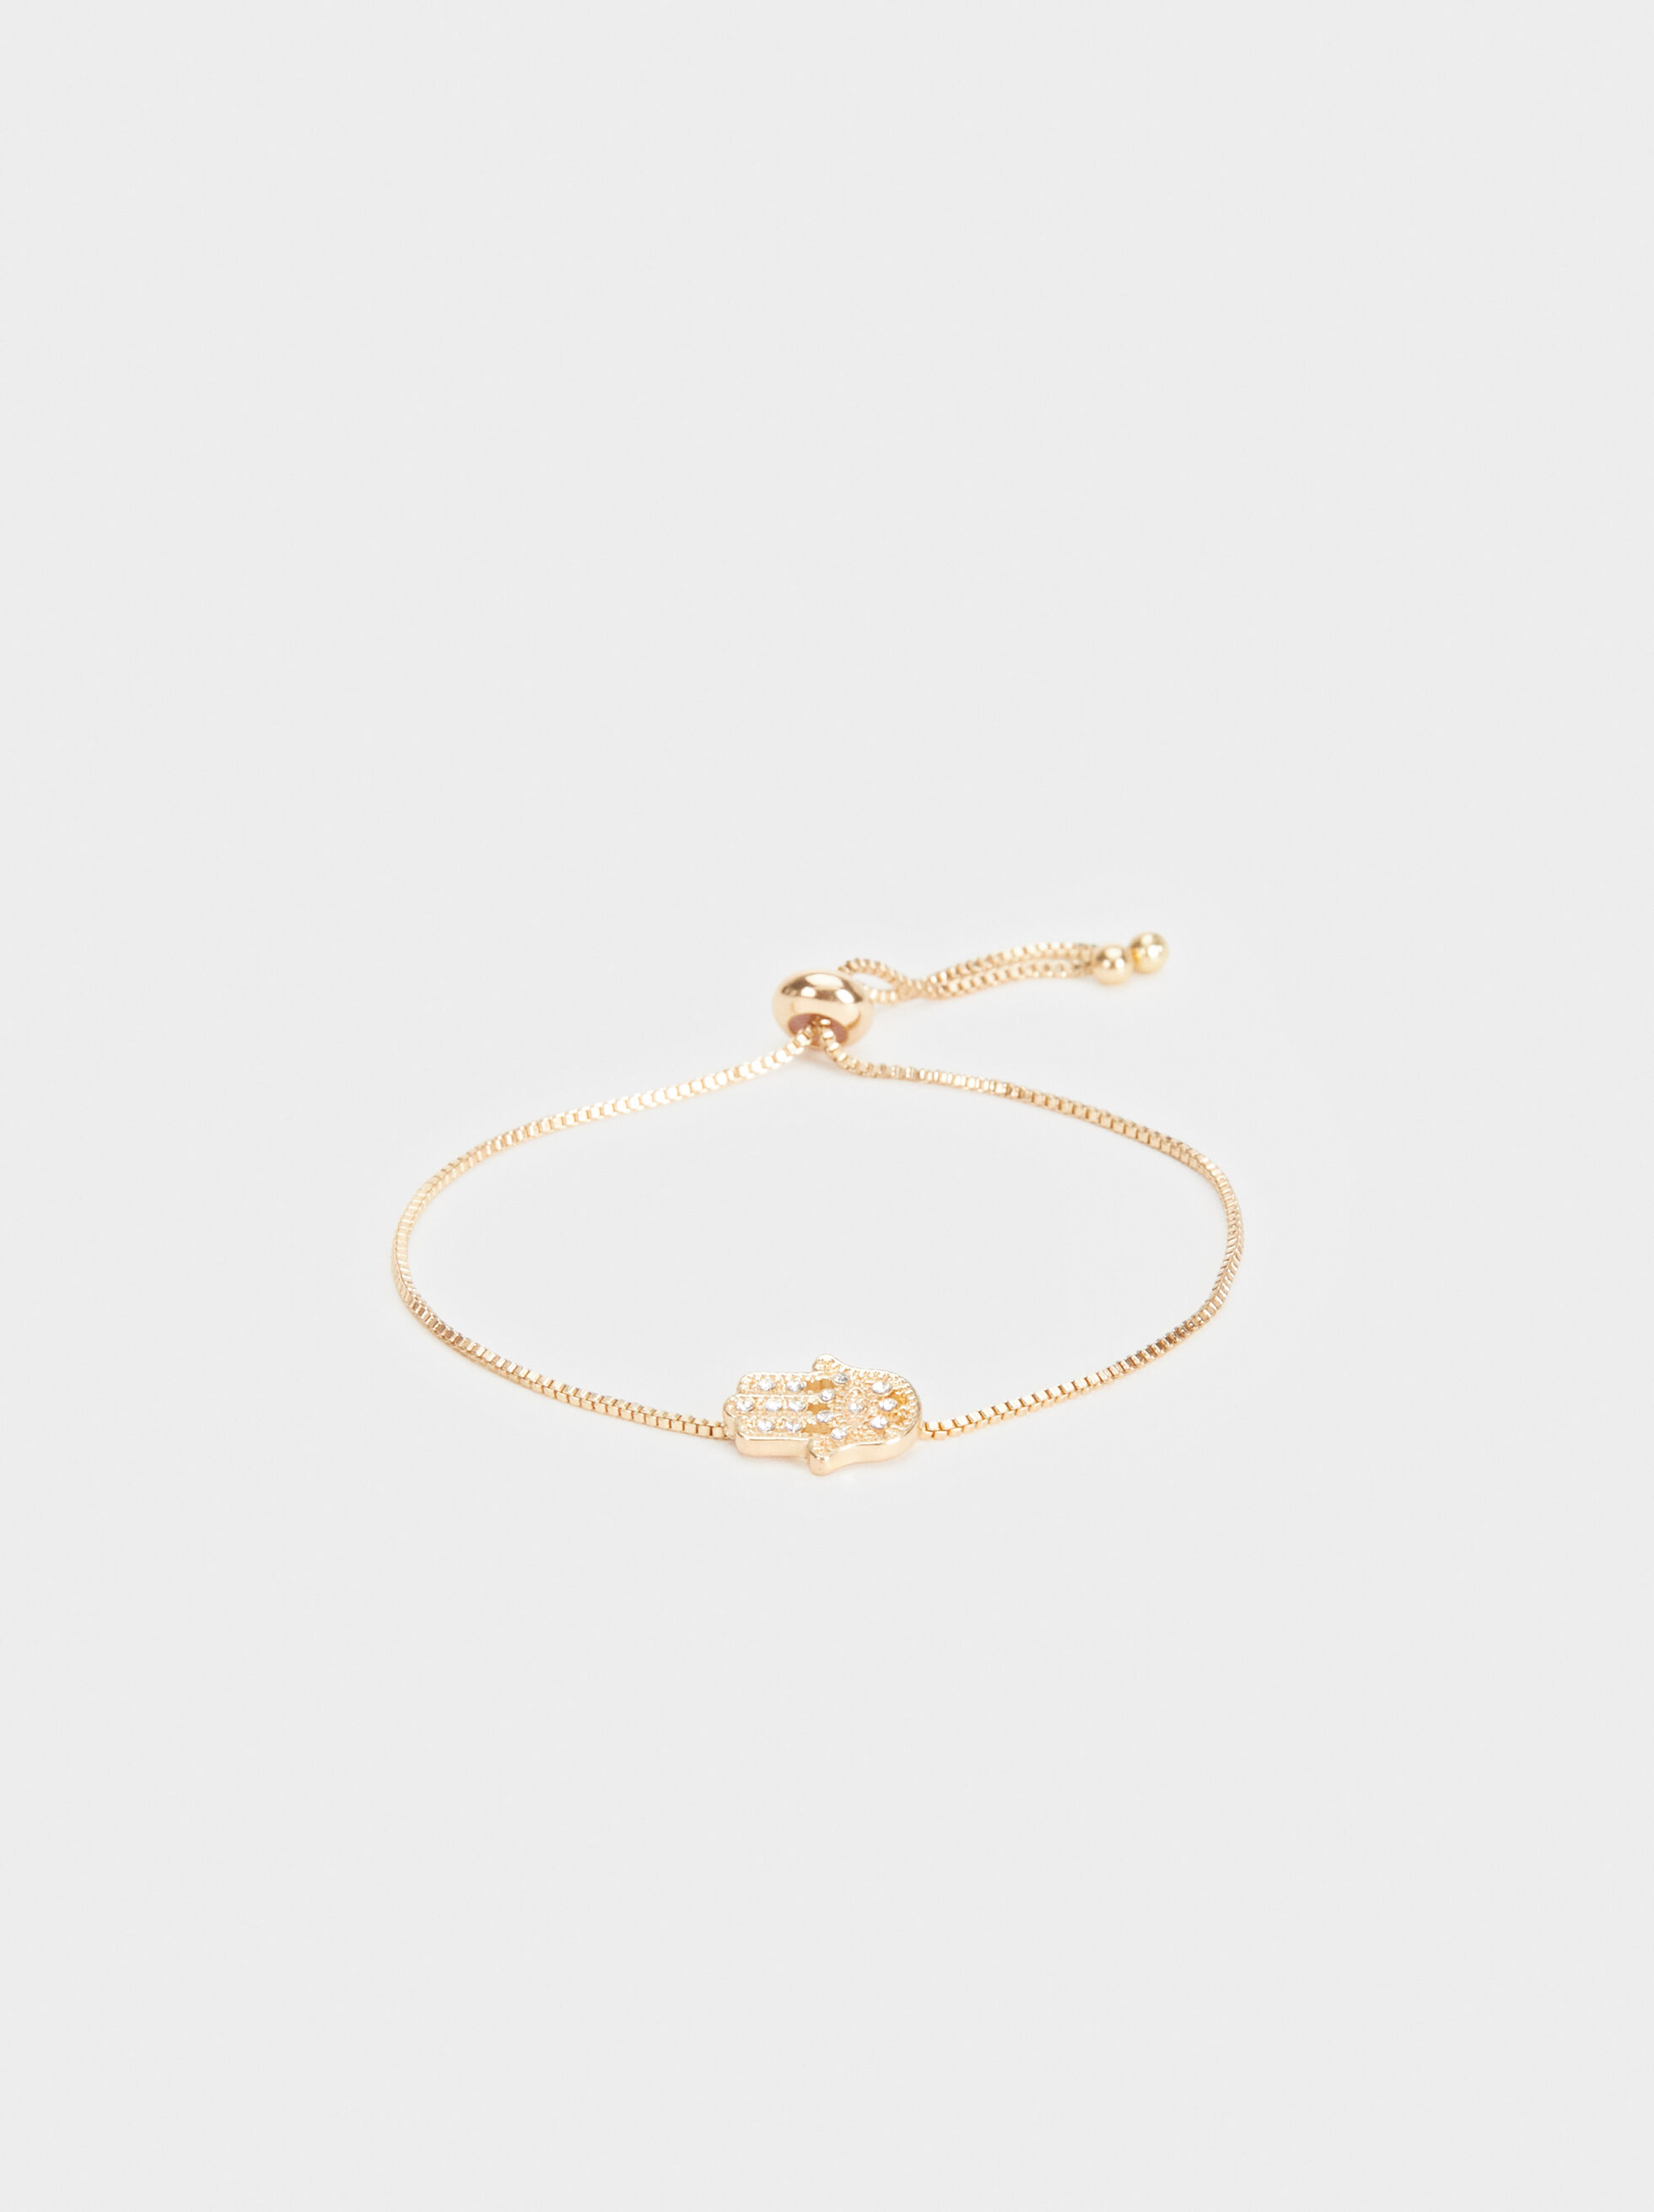 Adjustable Gold Bracelet With Hand Charm, , hi-res